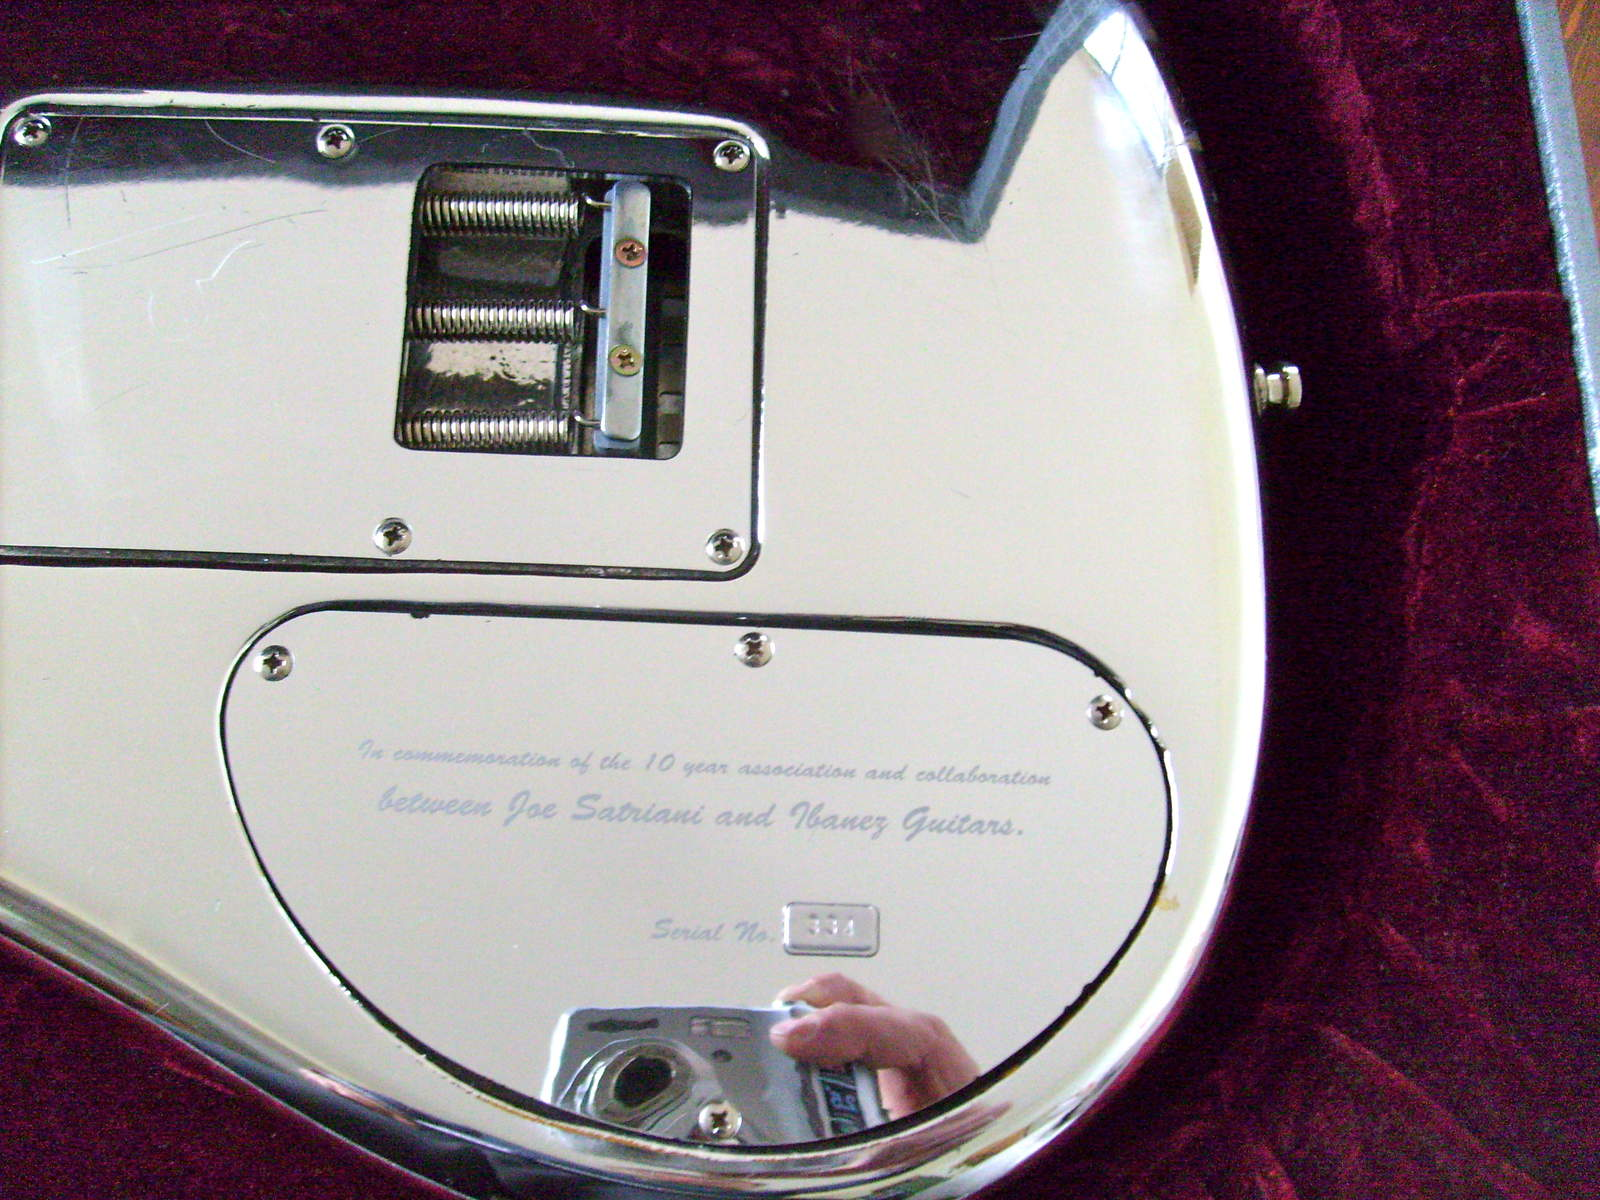 Ibanez Chrome Boy http://en.audiofanzine.com/search/images/chromeboy+ibanez+js++.html